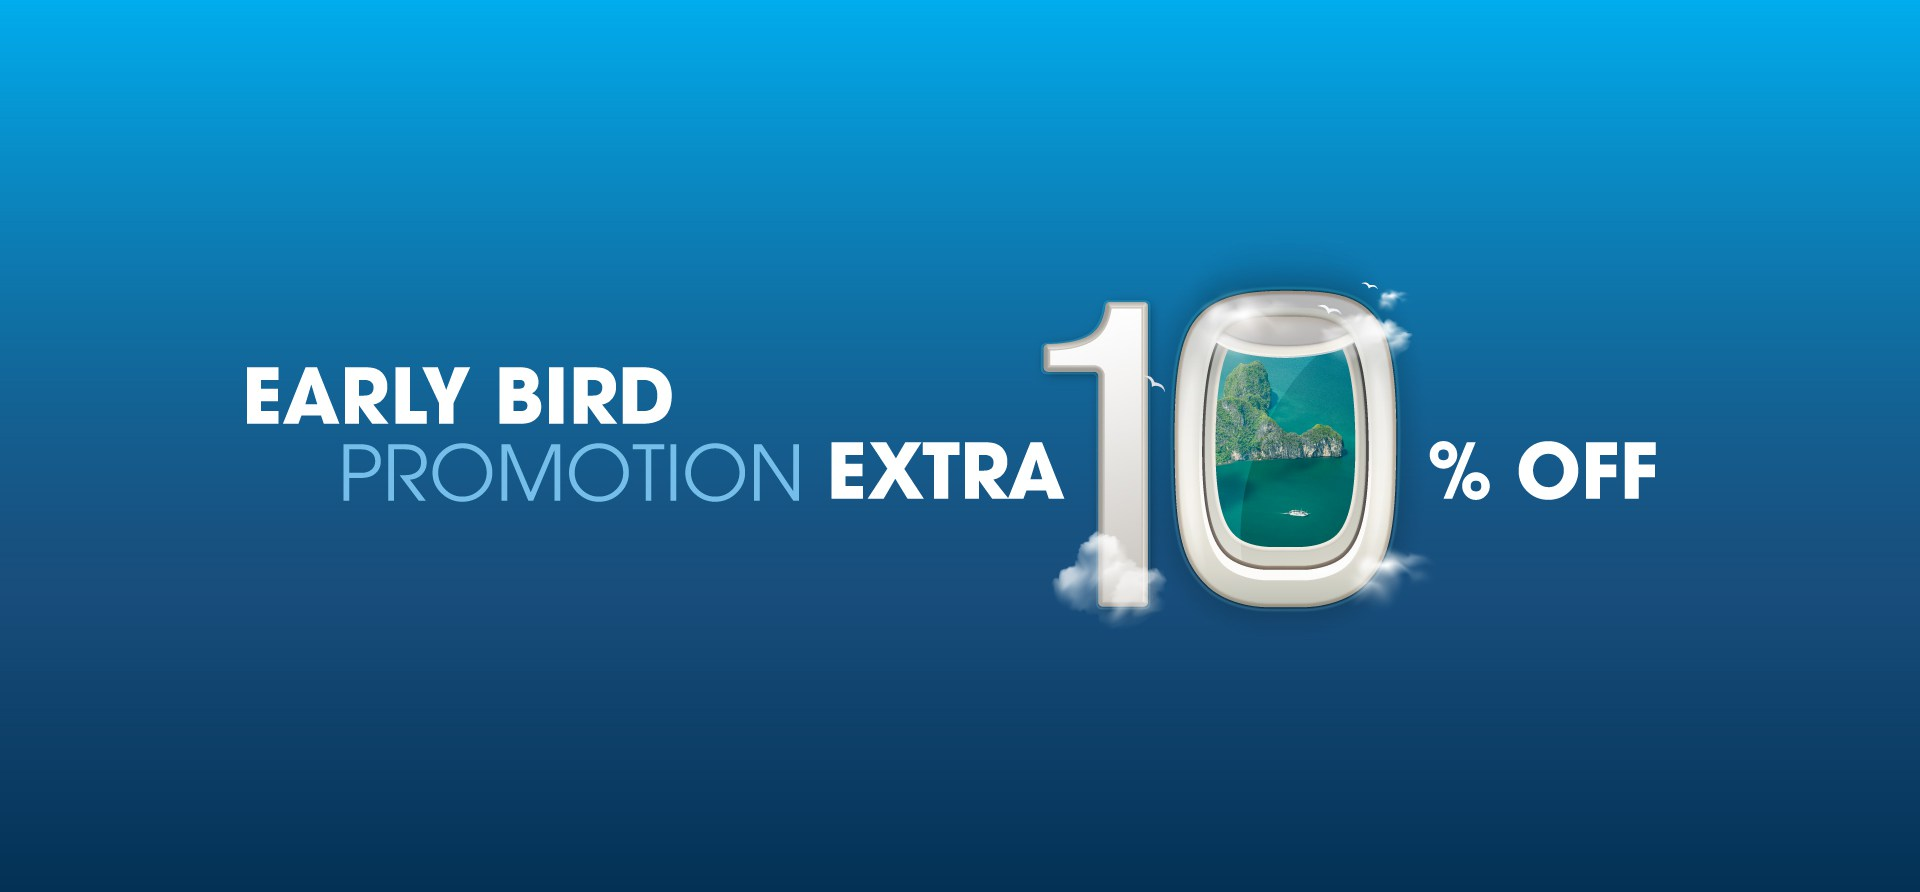 Early bird - extra up to 10% off